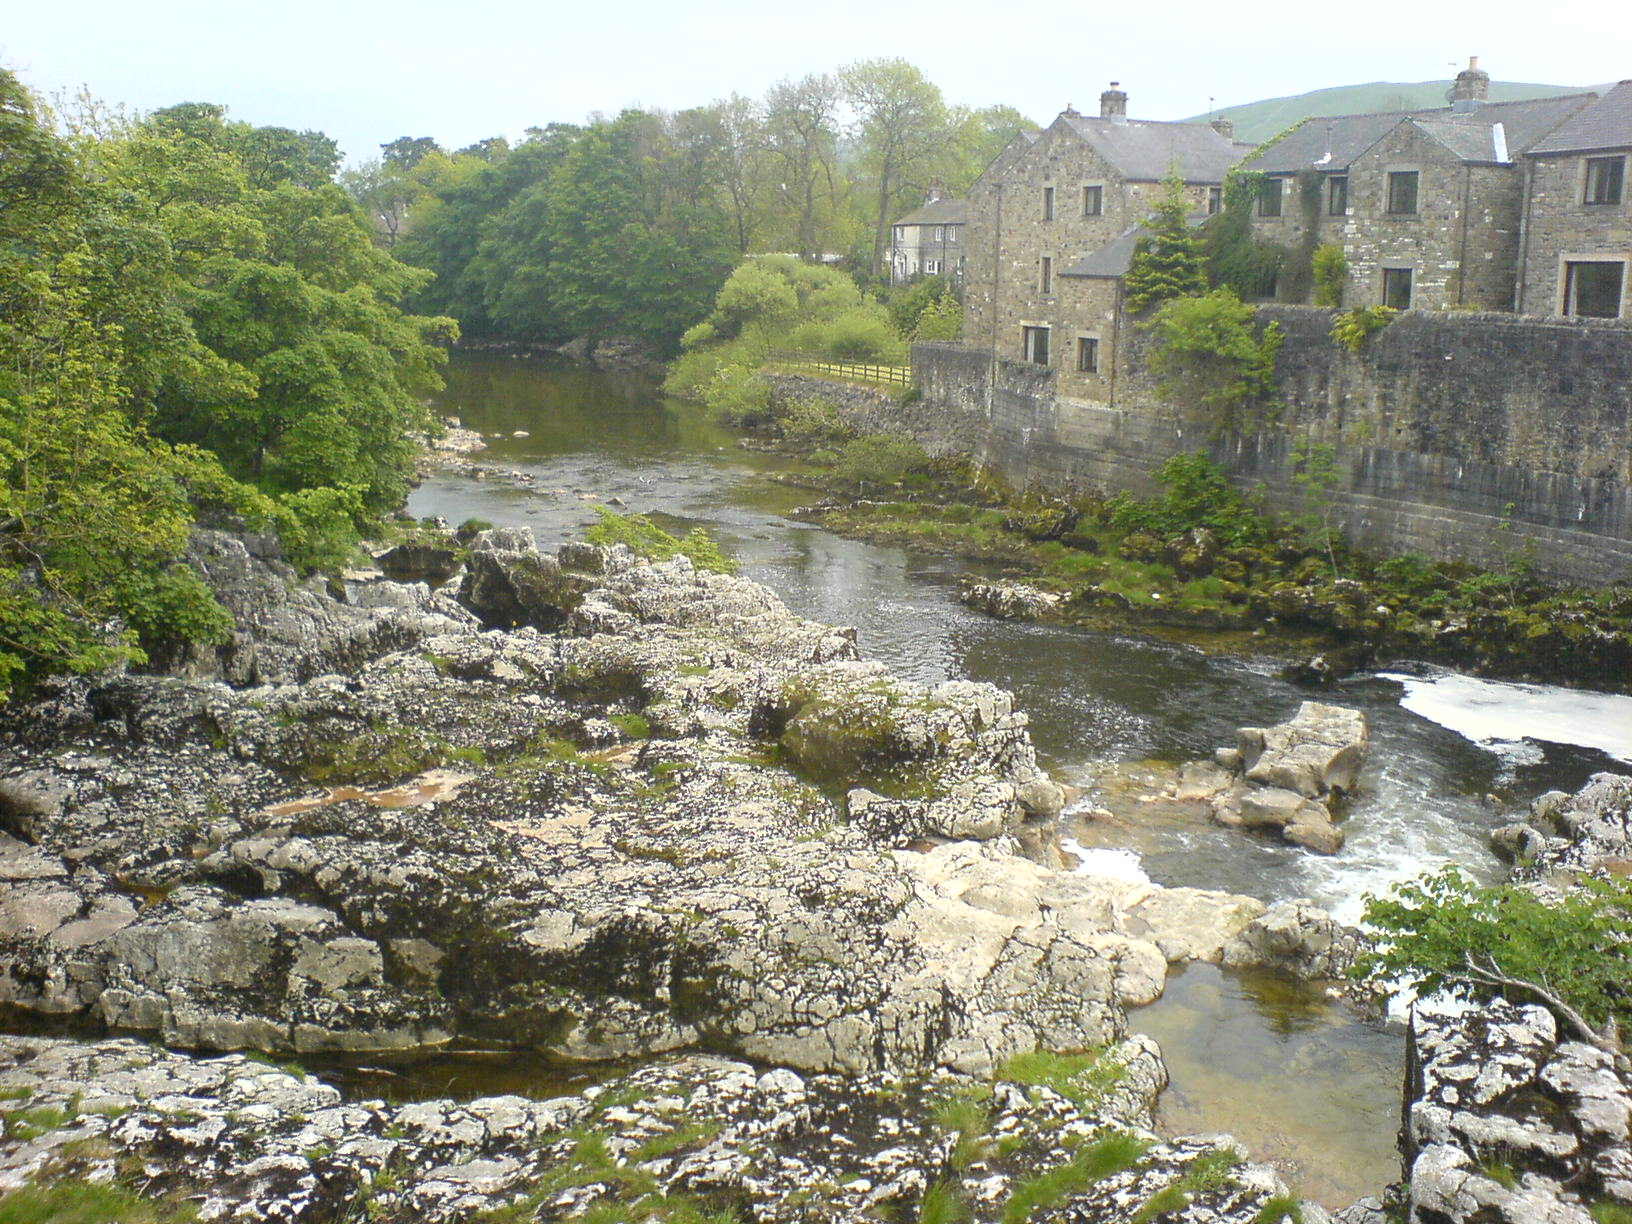 Outdoor Society's Week 8 Walk: Grassington